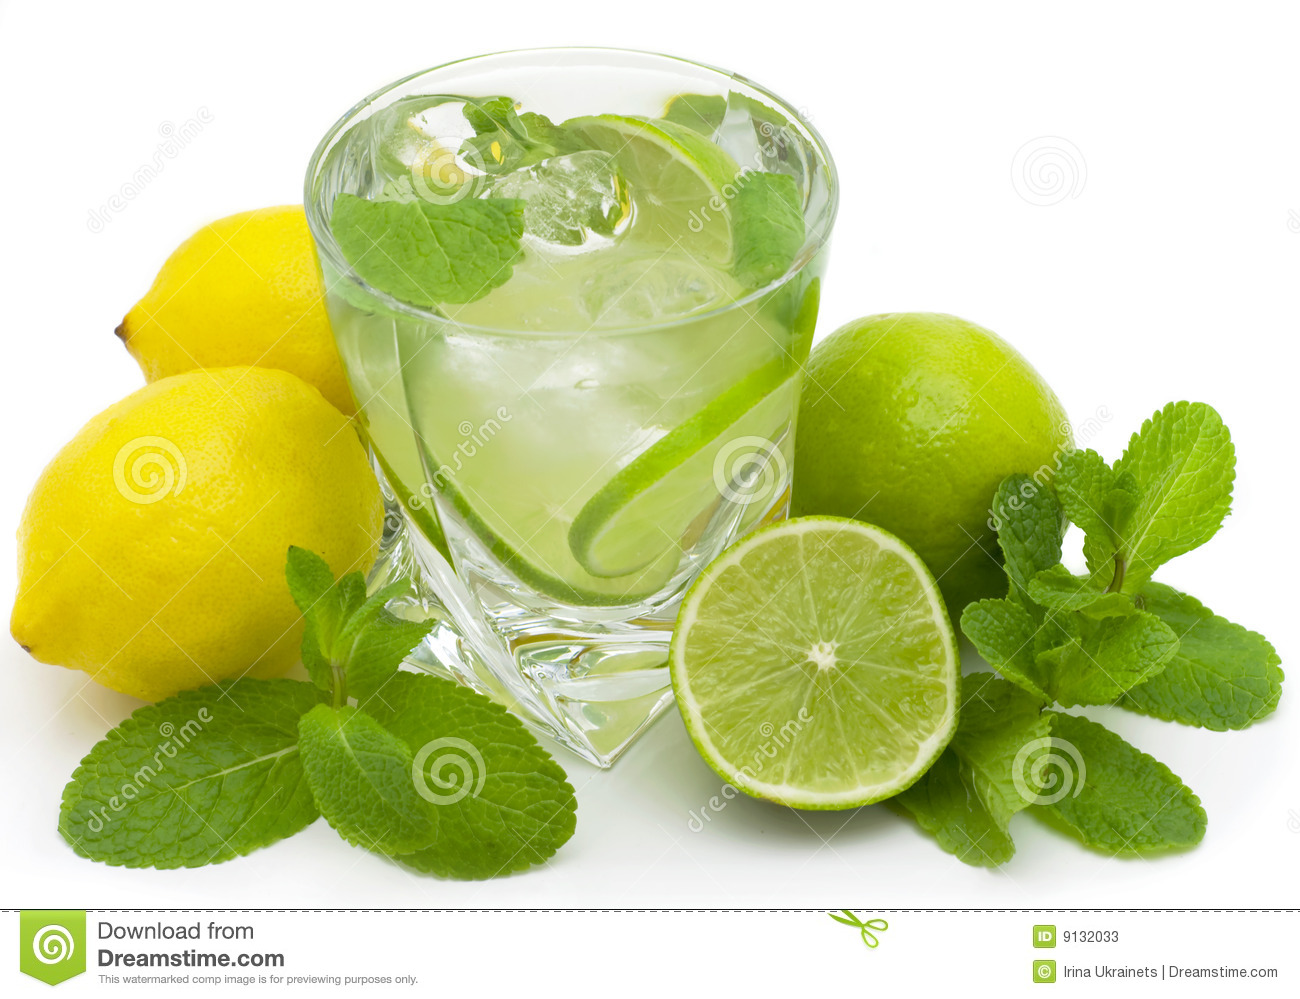 Mojito, limes and mint isolated on a white background.